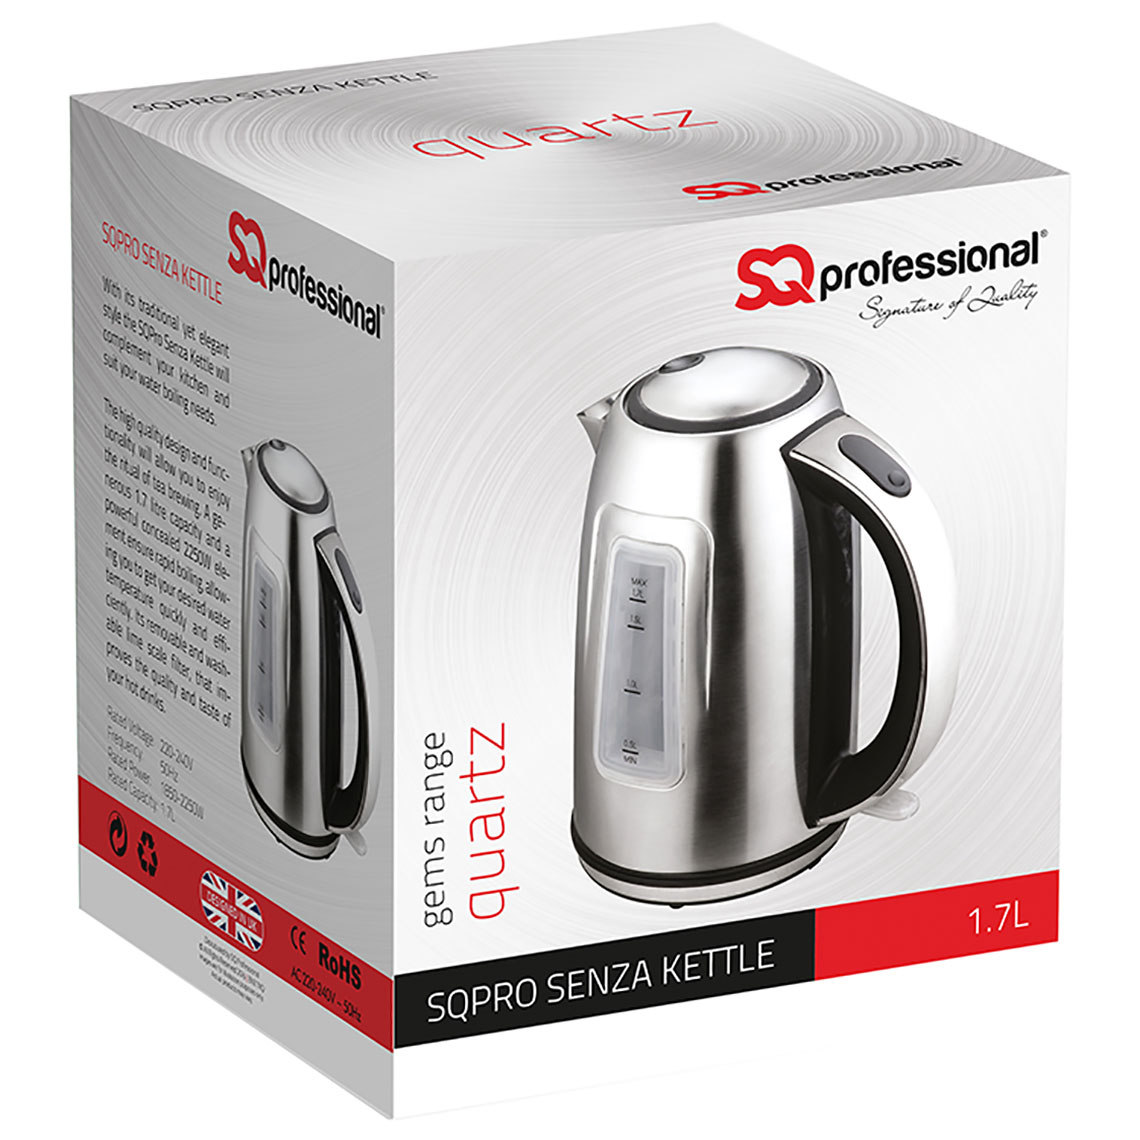 Sq Professional - Gems Range - Senza Kettle box